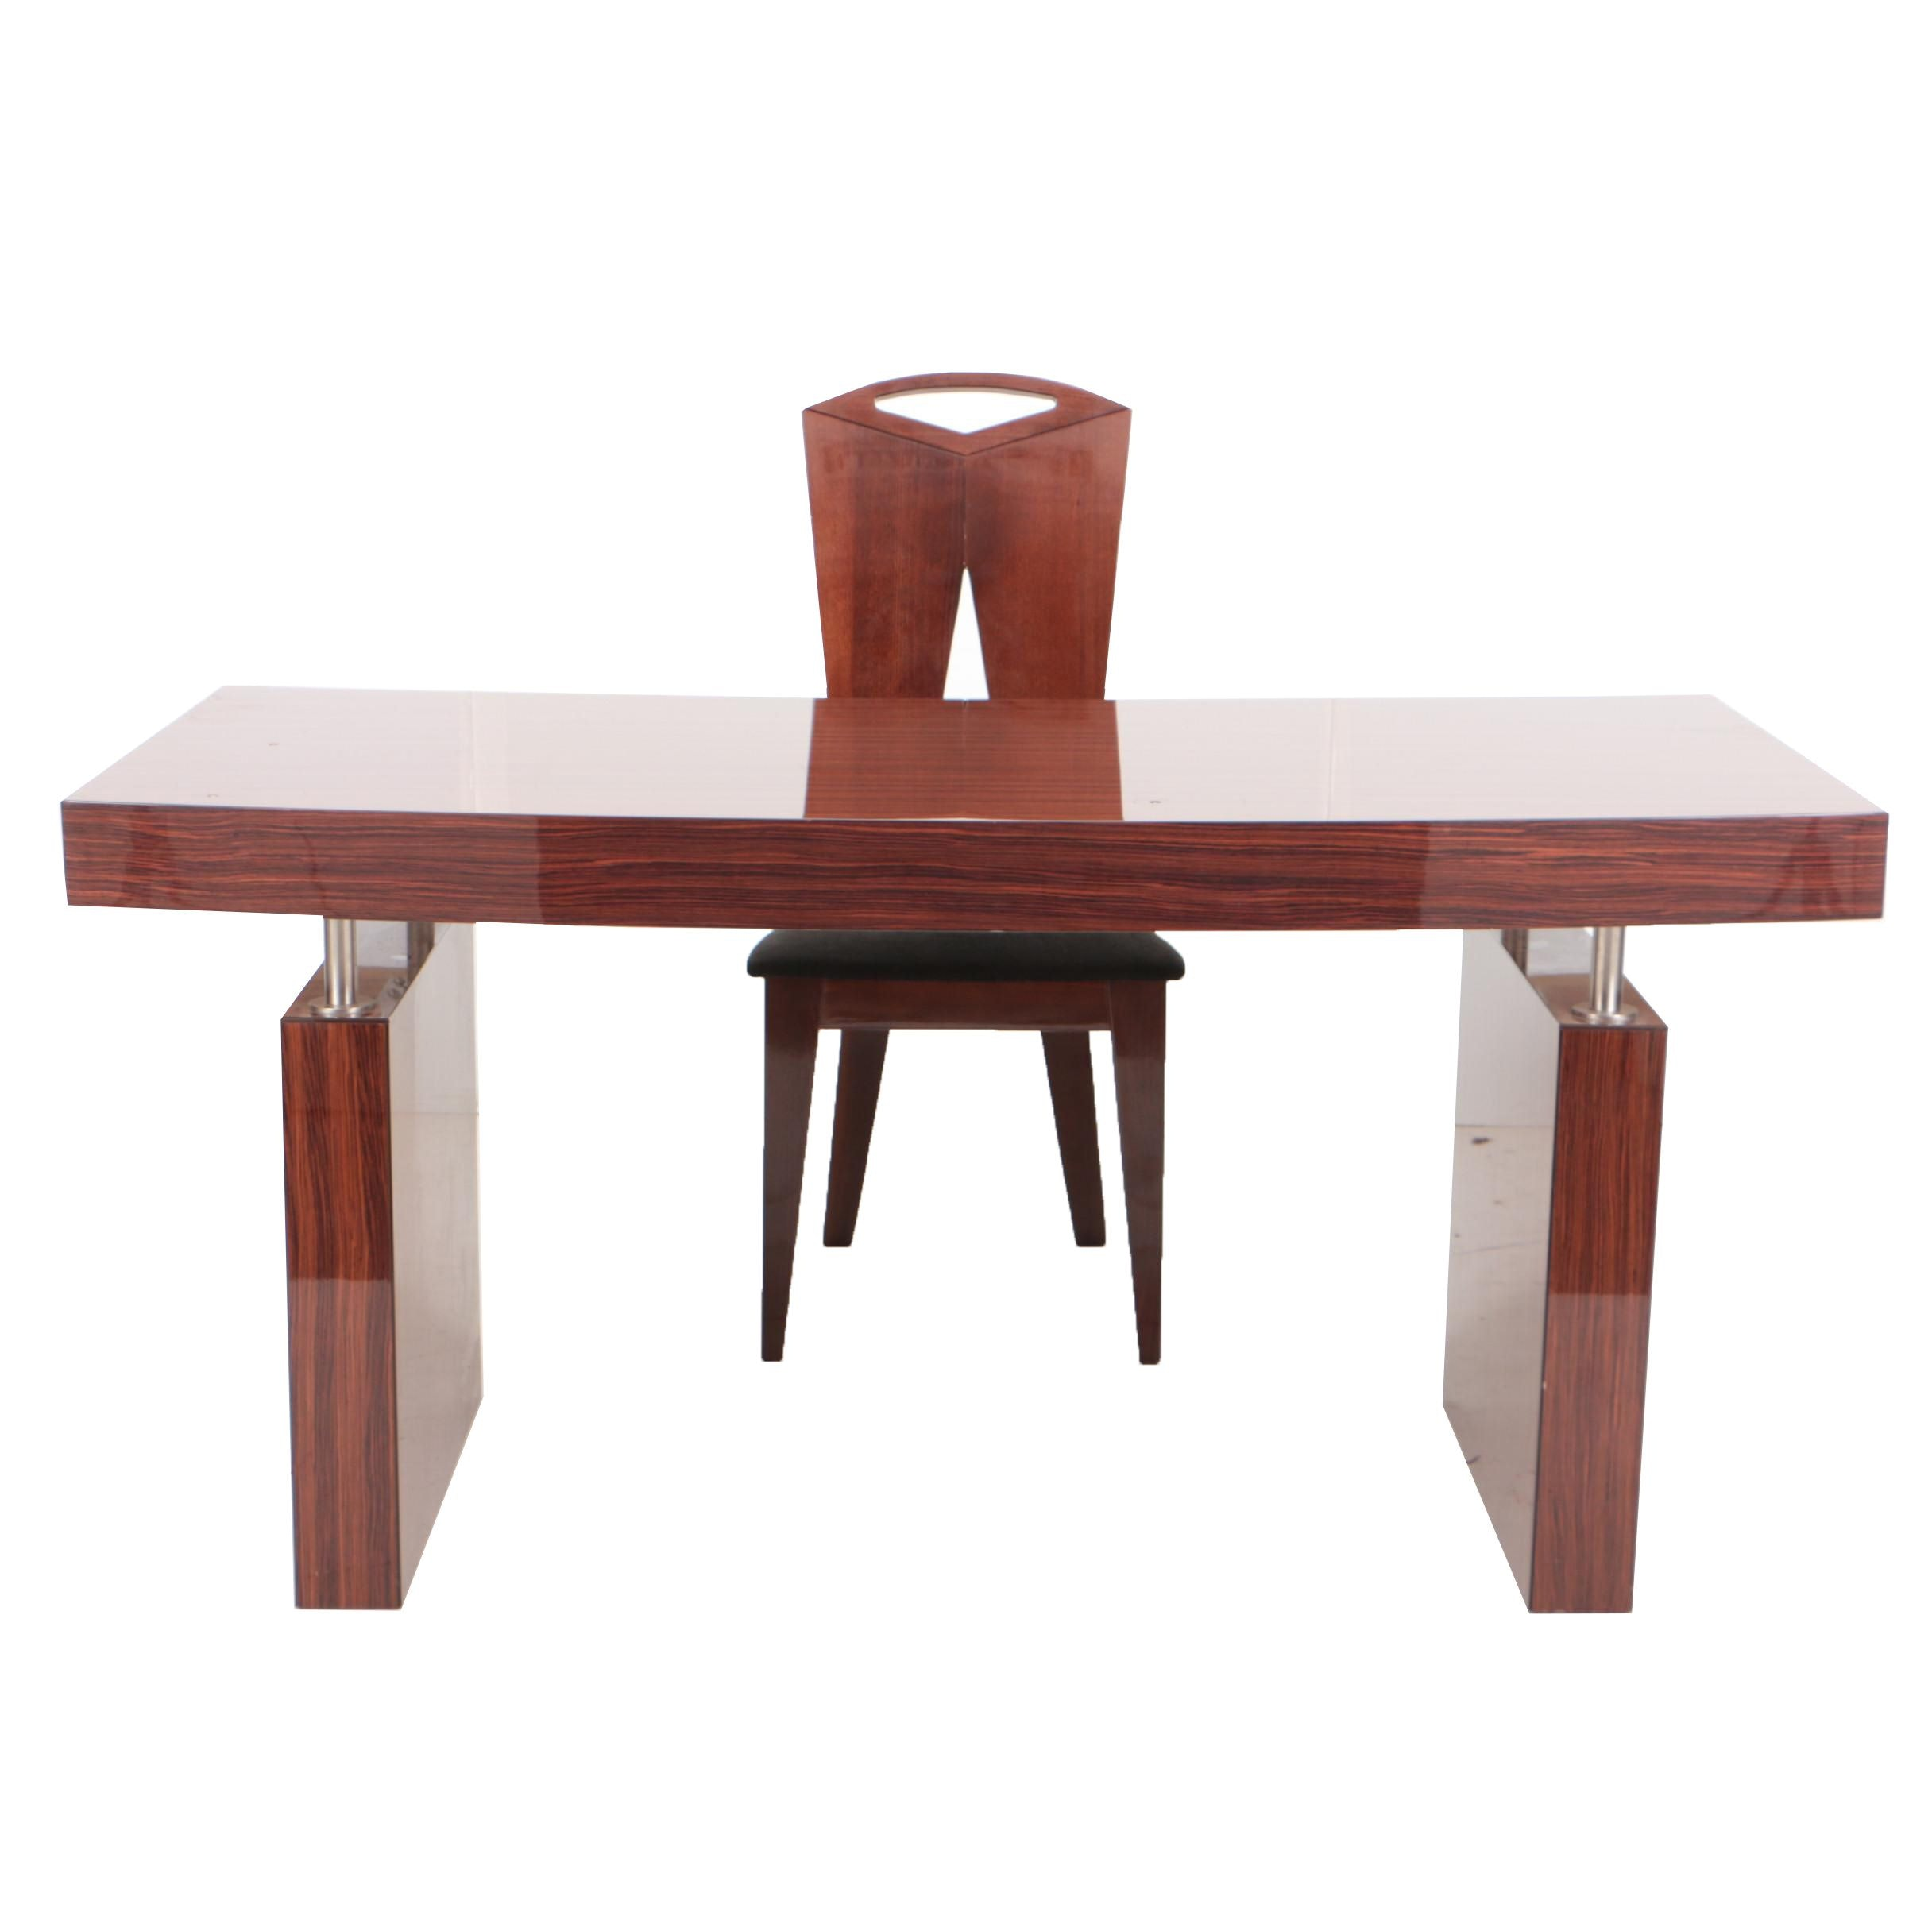 Excelsior Designs Steel-Mounted Rosewood Writing Table with Beech Side Chair